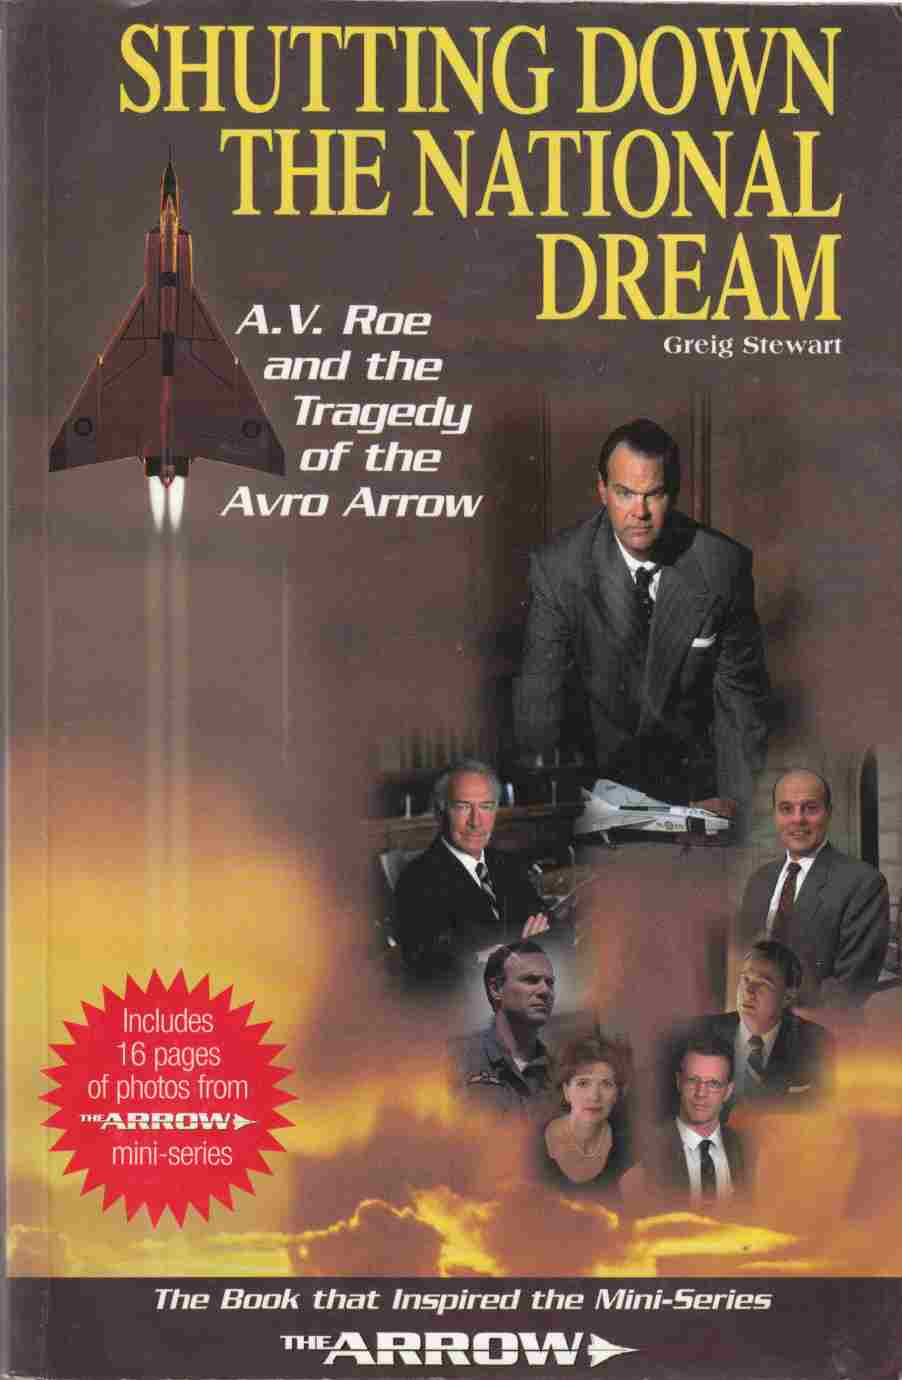 Image for Shutting Down the National Dream A. V. Roe and the Tragedy of the Avro Arrow